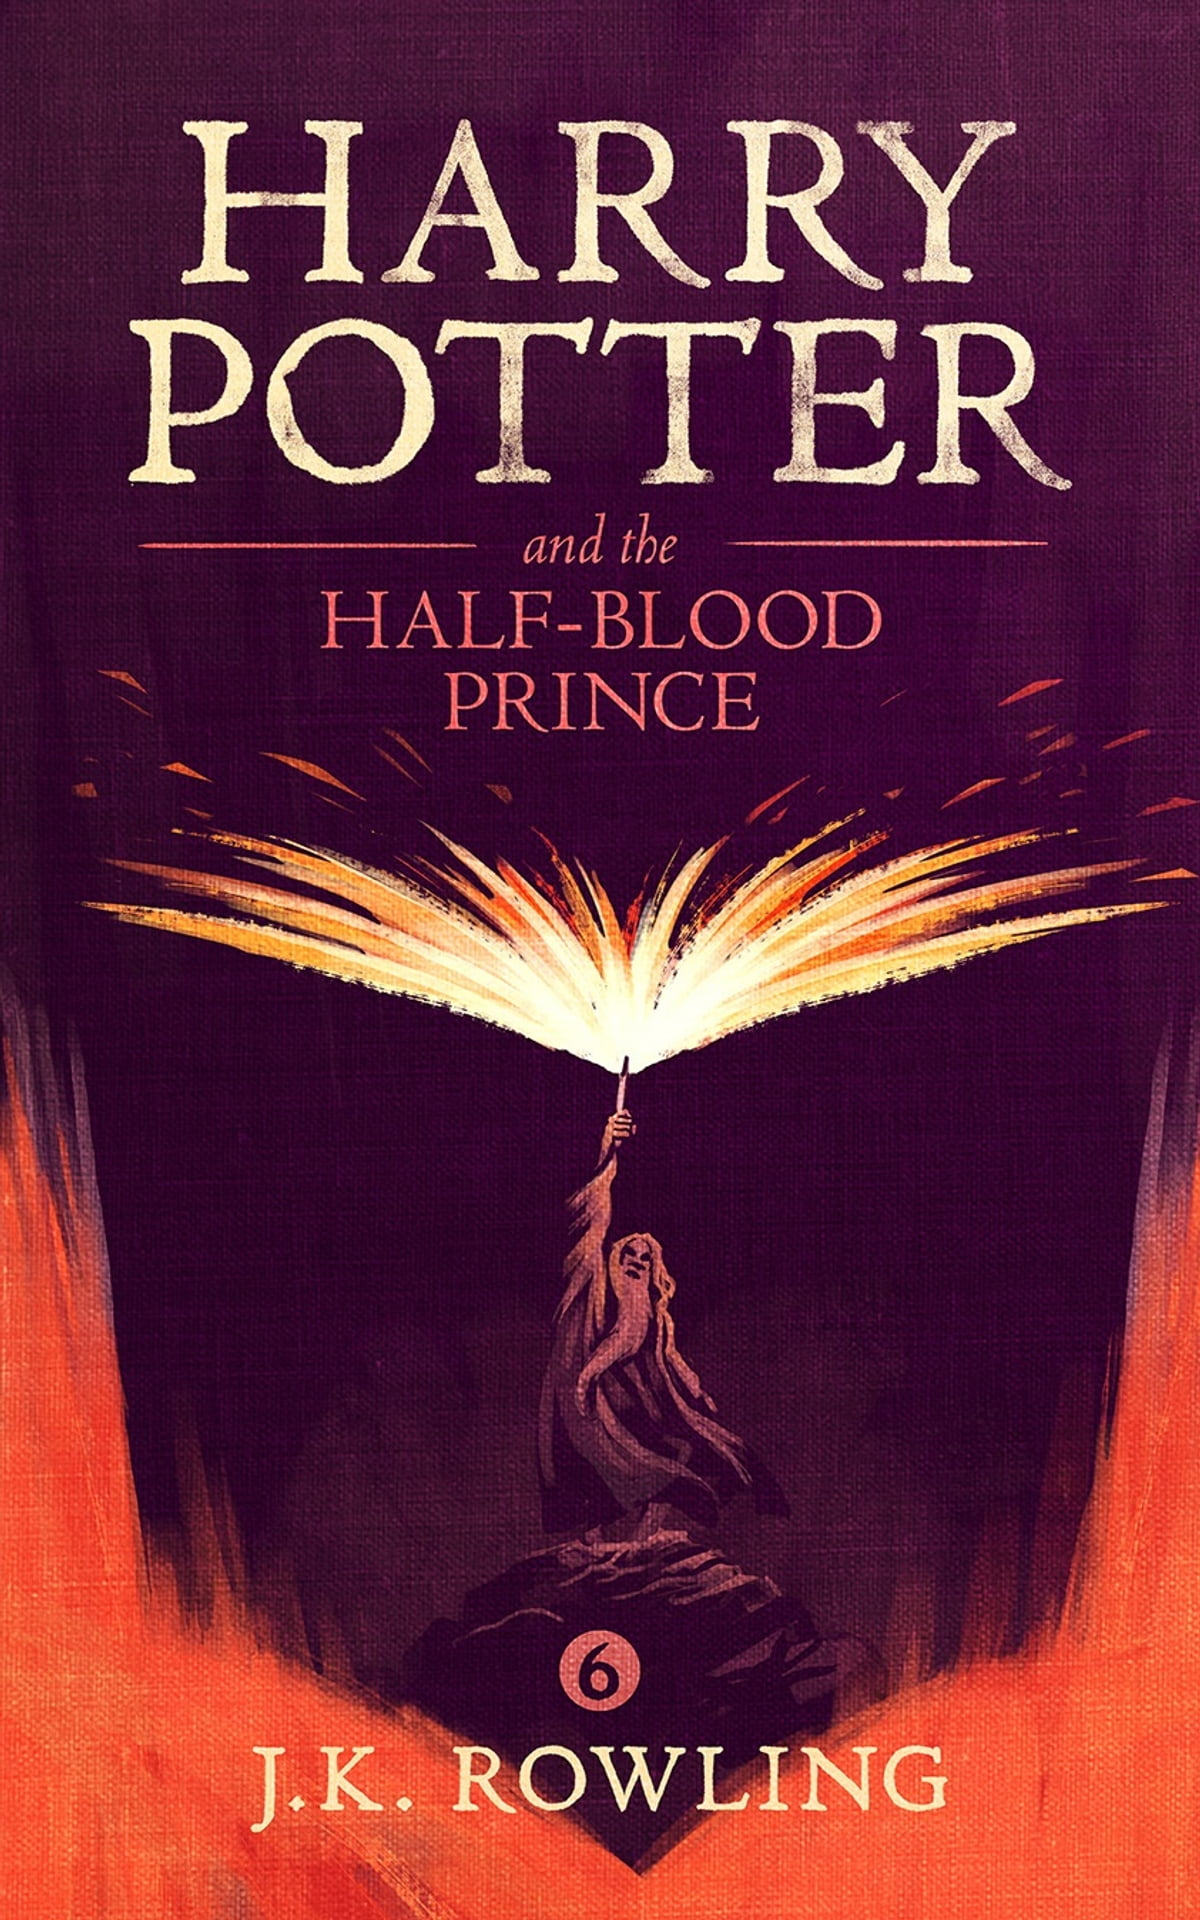 Harry Potter and the Half-Blood Prince eBook by J.K. Rowling -  9781781100547 | Rakuten Kobo